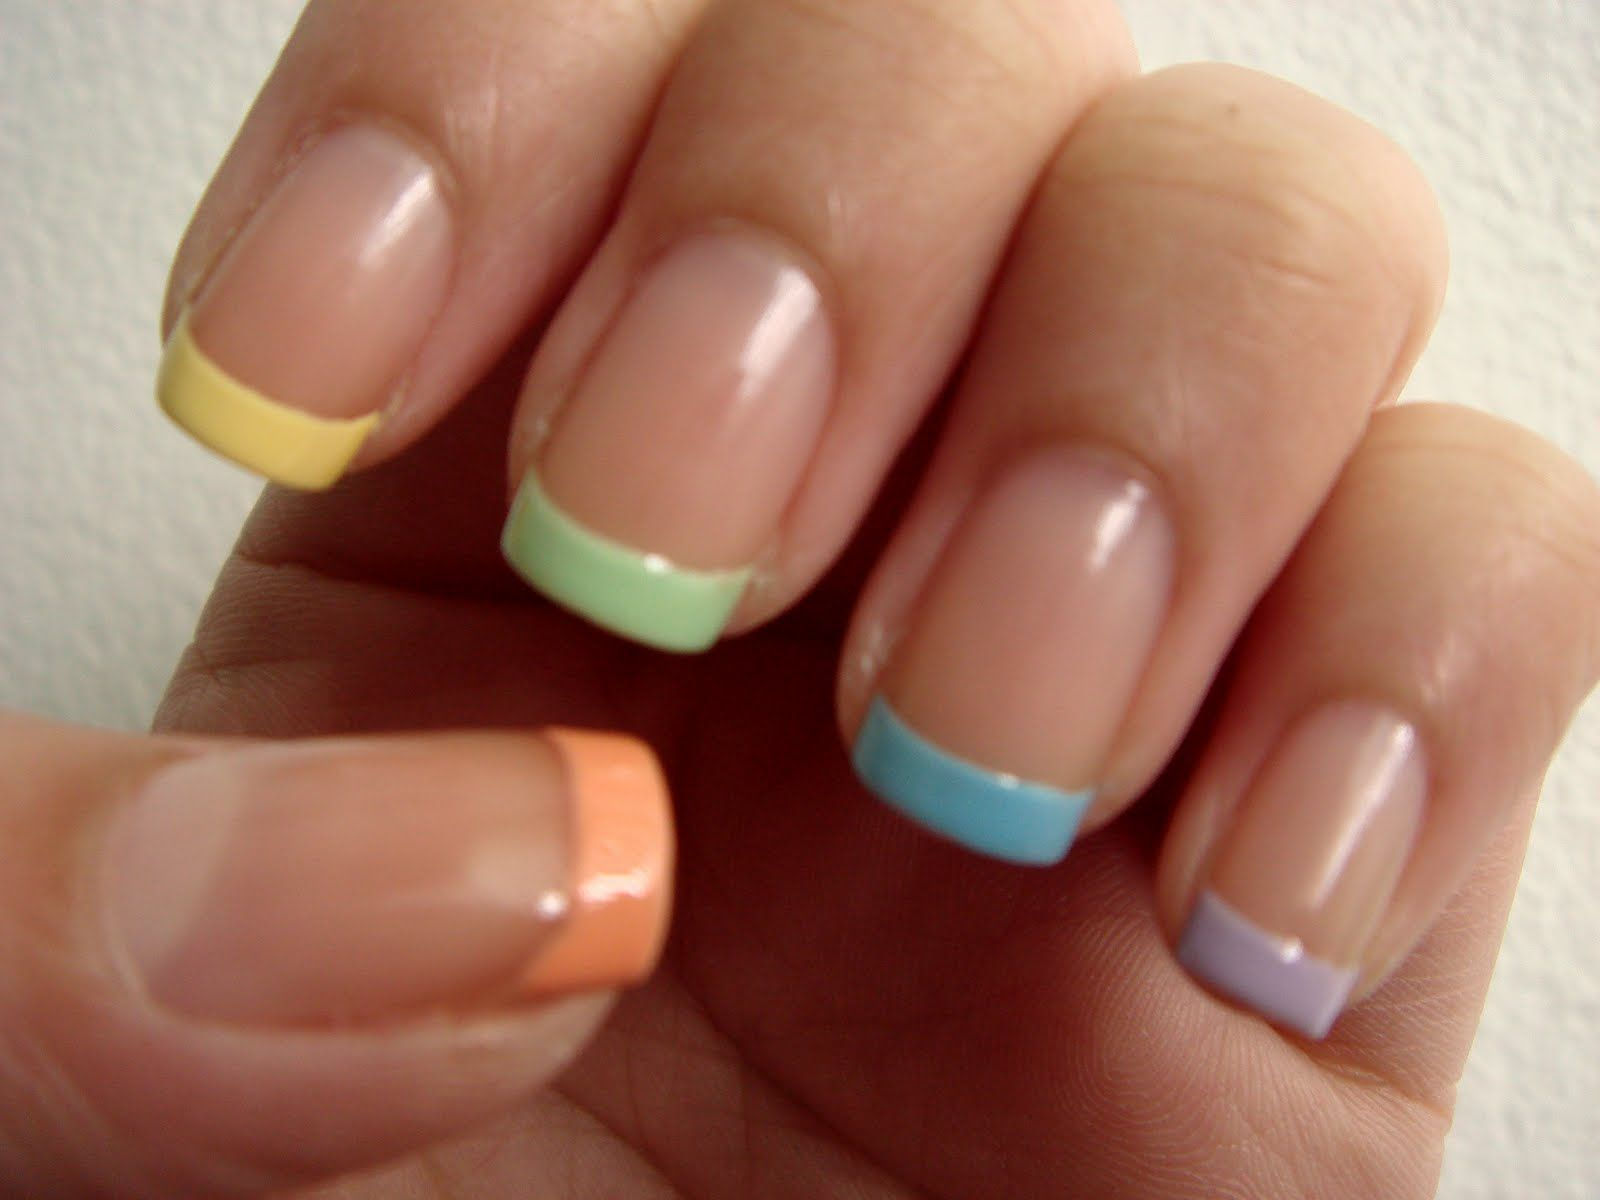 cute-nail-designs-with-glitter-358.jpg 1,600×1,200 pixels | nails ...